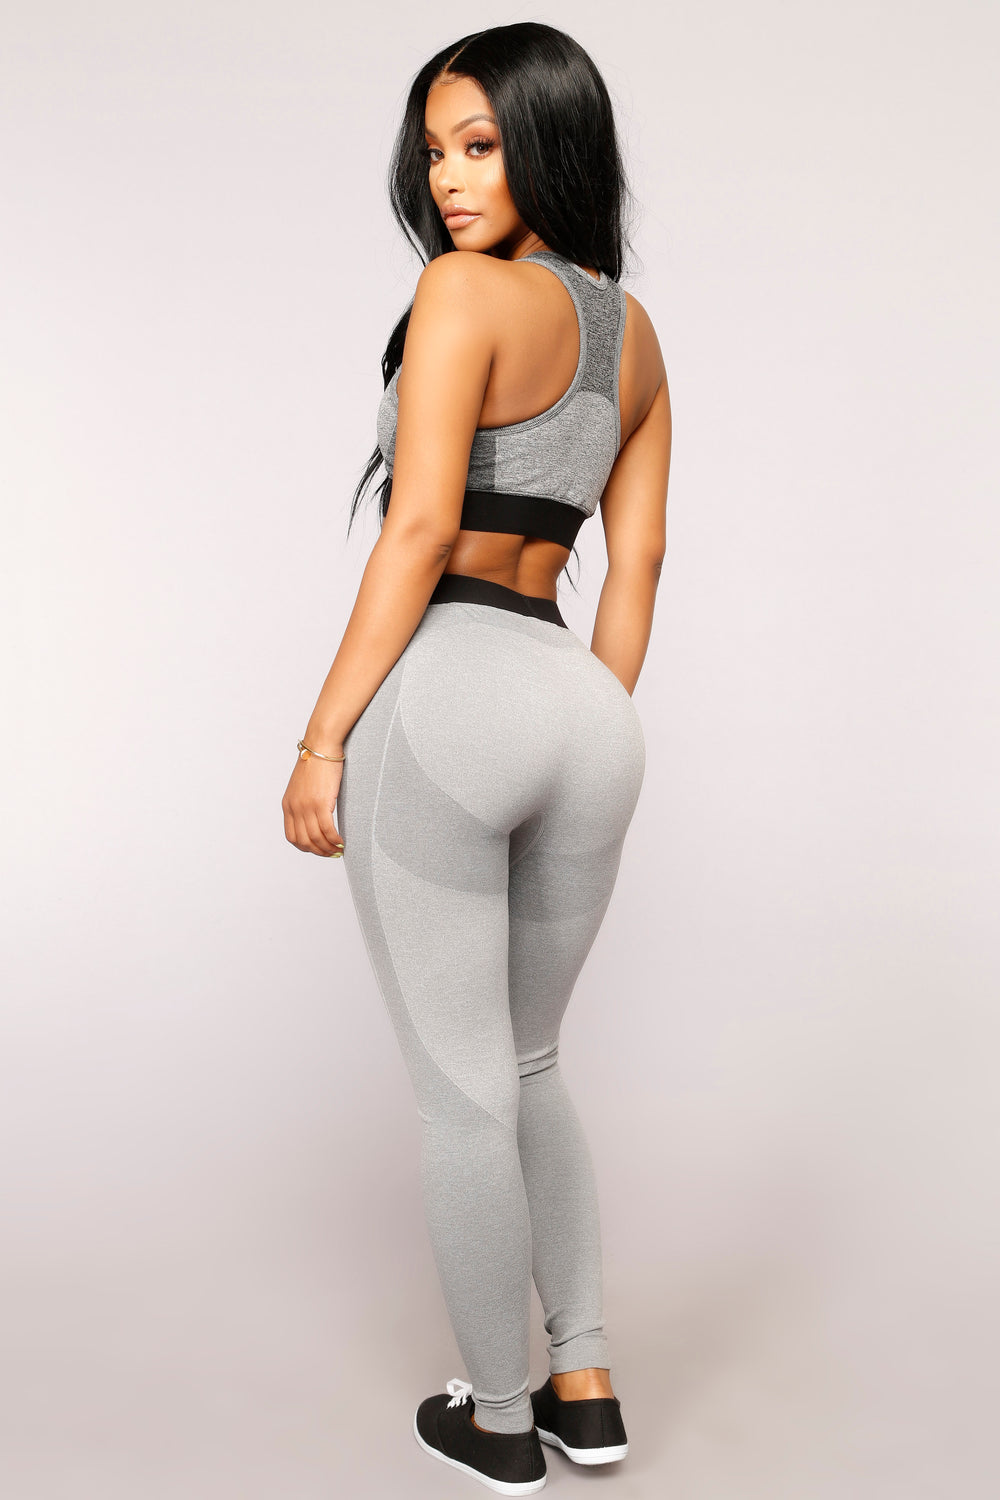 Win The Race Seamless Active Sports Bra - Grey